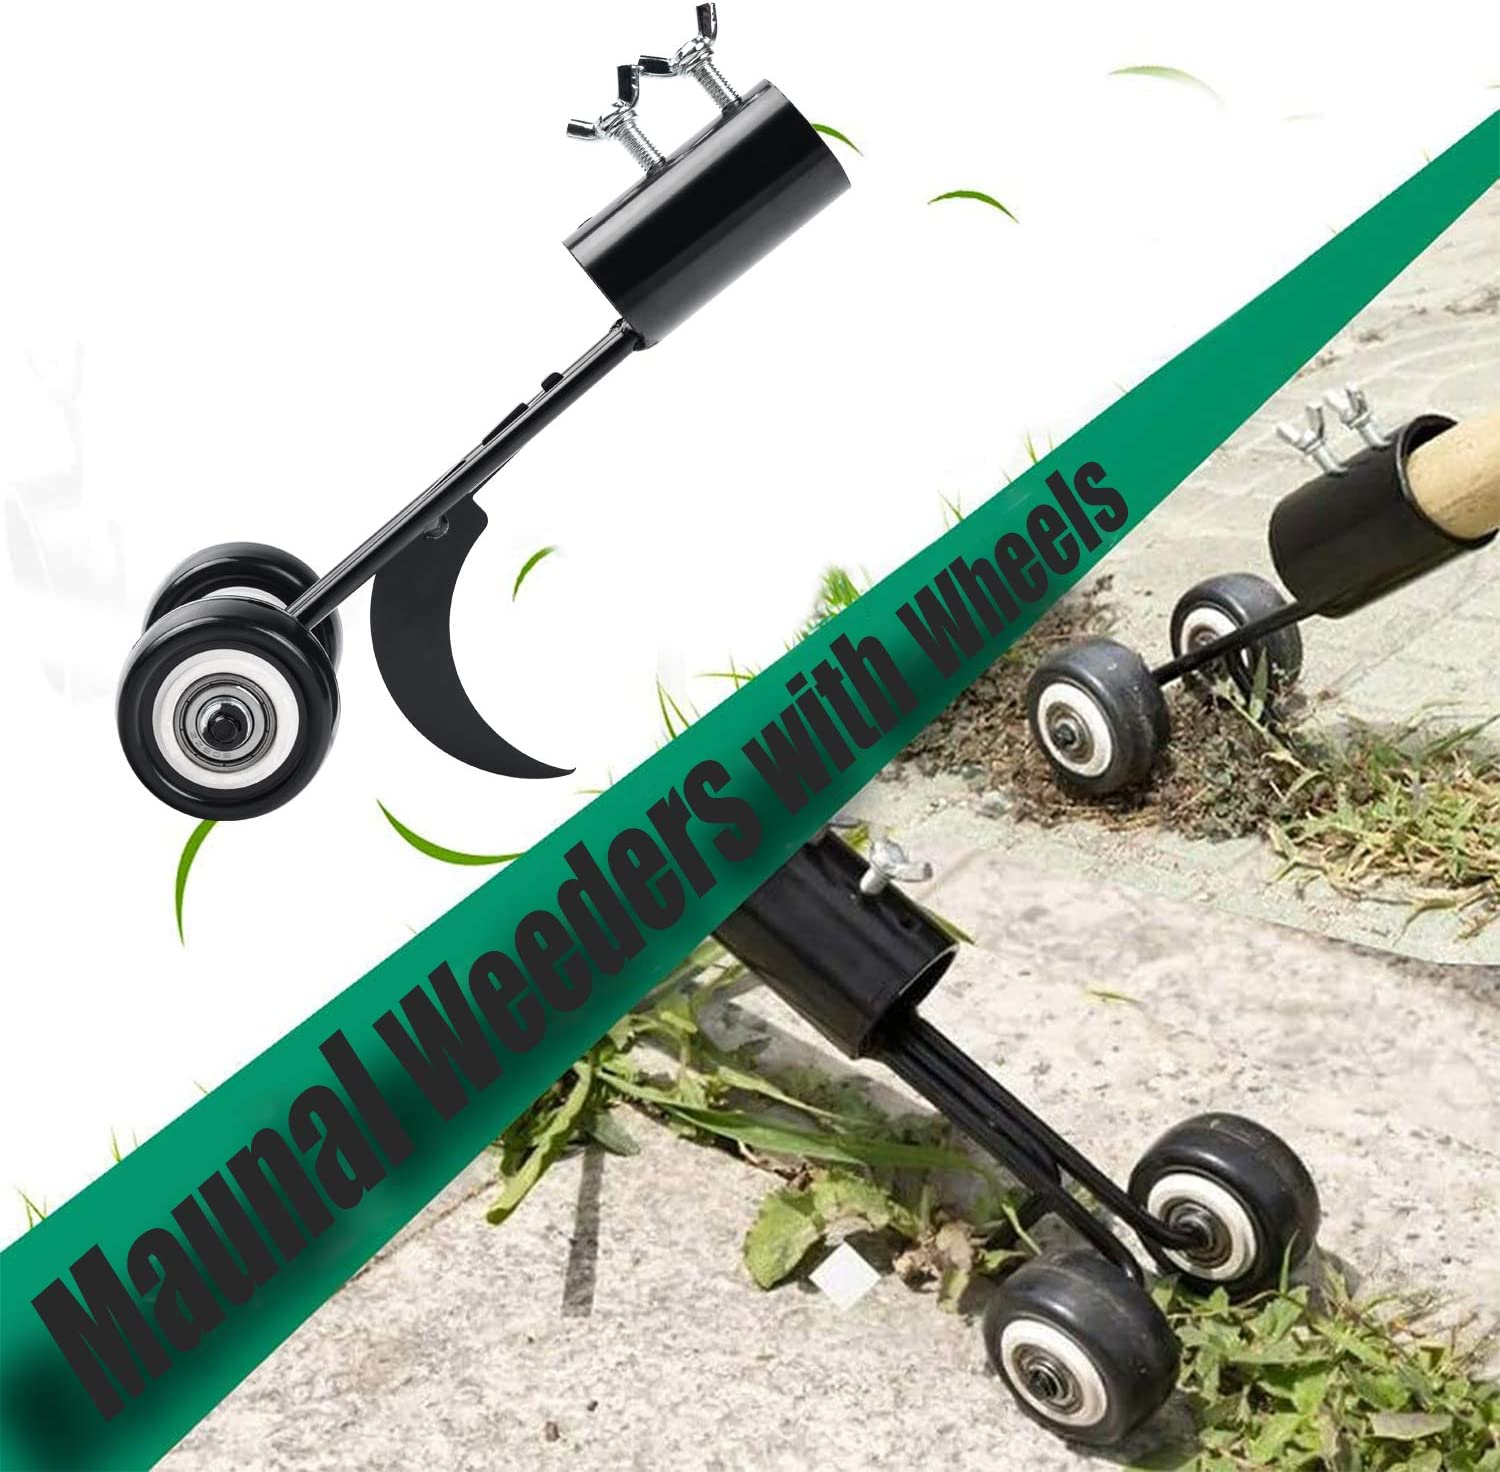 yalanle Weeds Snatcher Crack and Crevice Weeding Tool Weed Puller Household Helper Garden Tools Stand up Manual Weeder Hand Tool-Curved Hook : Garden & Outdoor